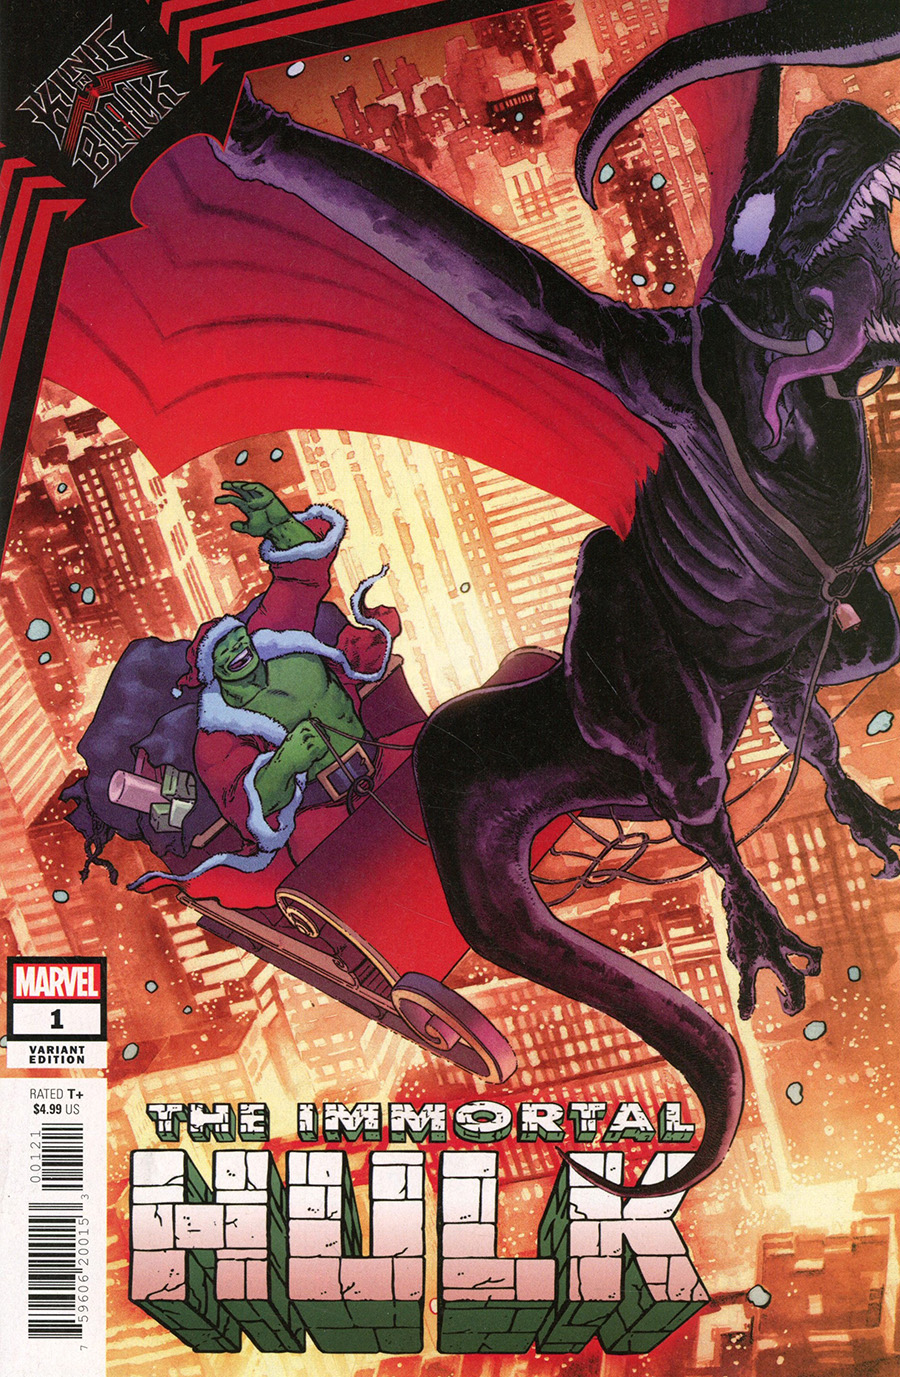 King In Black Immortal Hulk One Shot Cover C Incentive Aaron Kuder Santa Claus Variant Cover